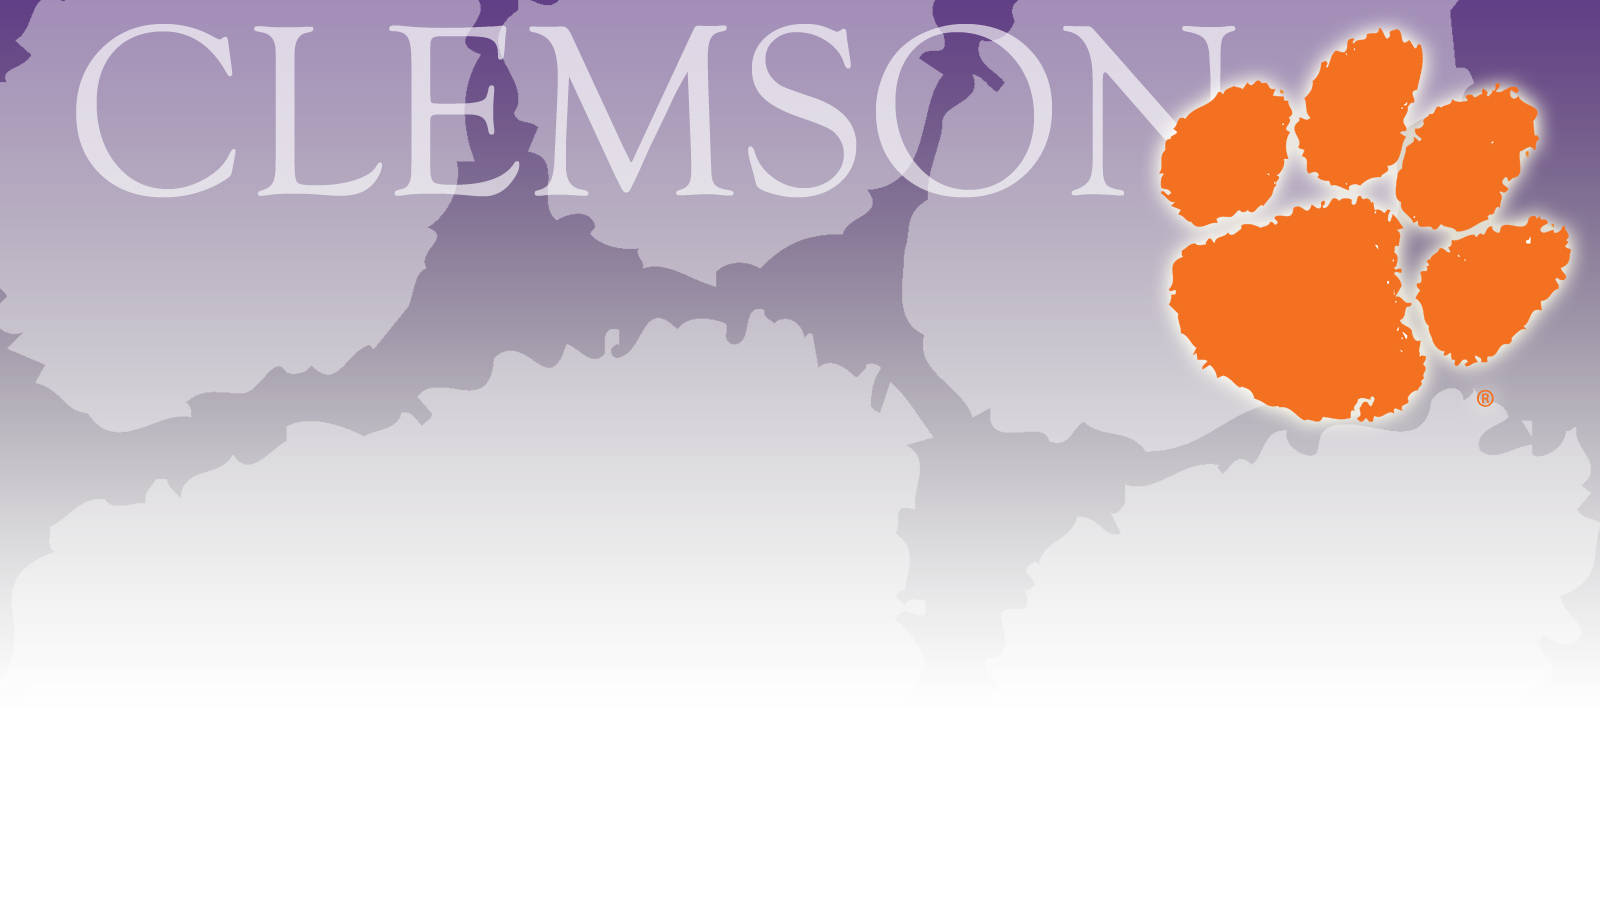 Limited Number of Tickets Available for Clemson Hall of Fame Induction